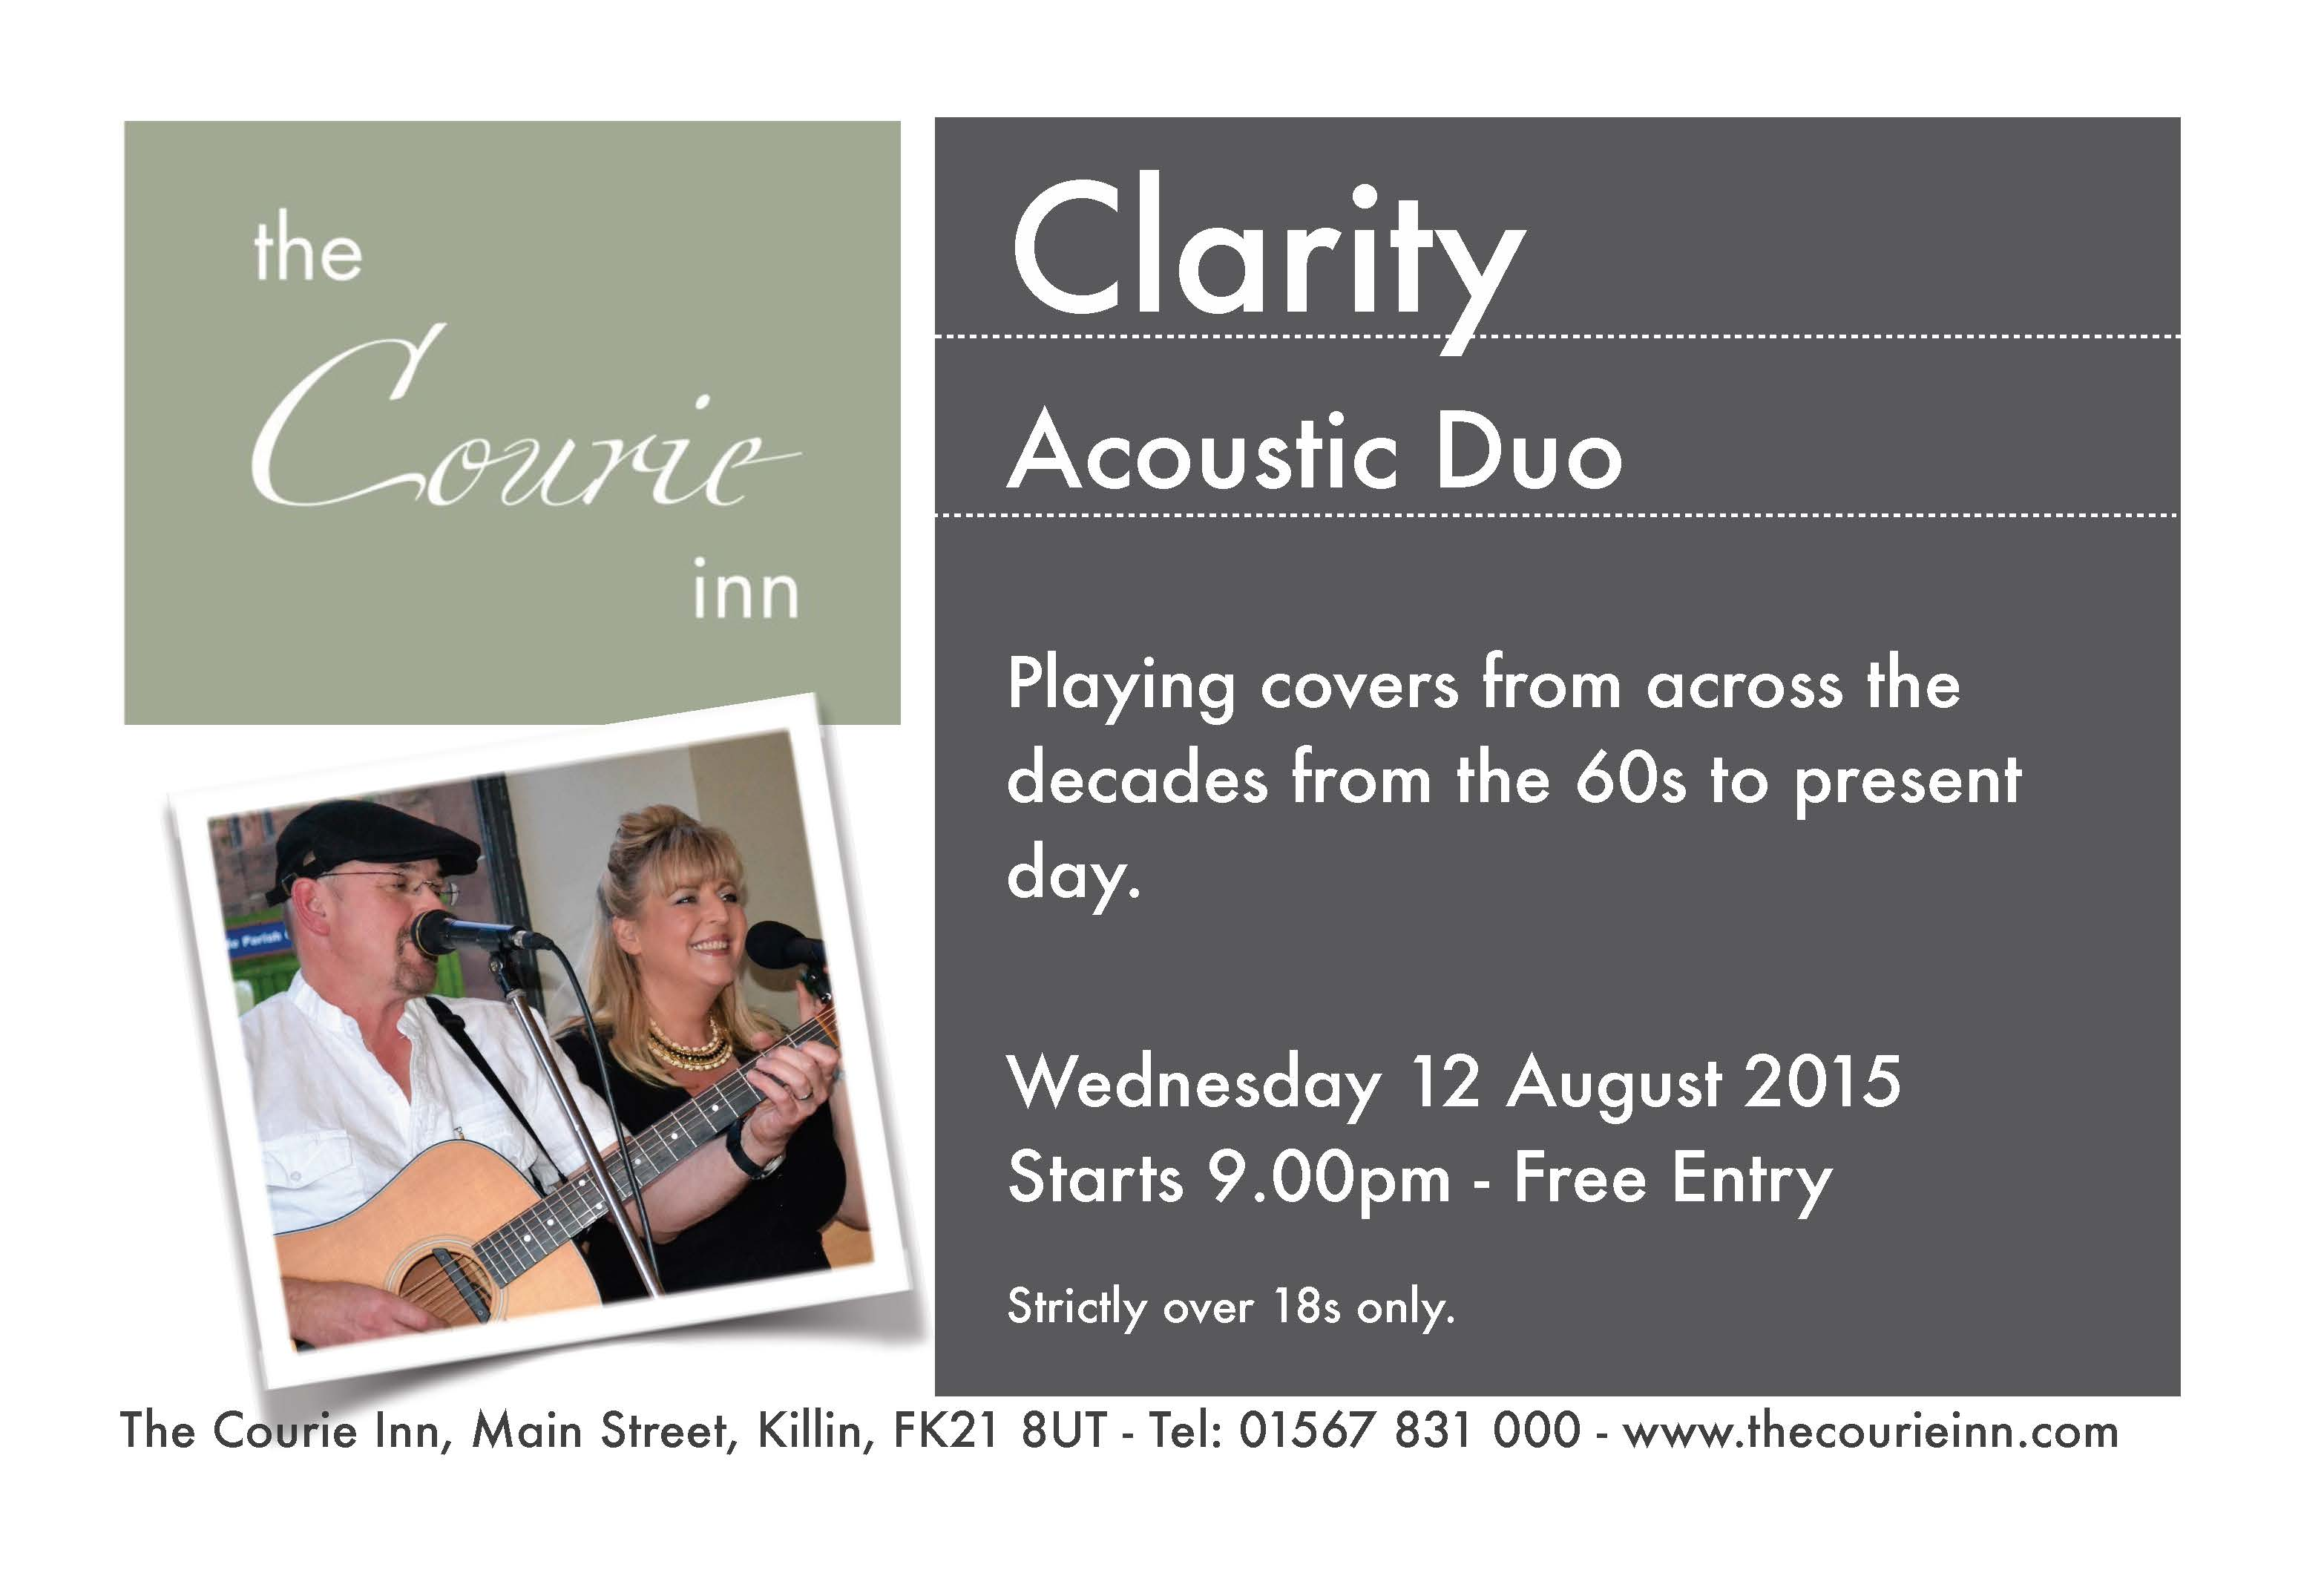 Clarity - Acoustic Duo at the Courie Inn, Killin